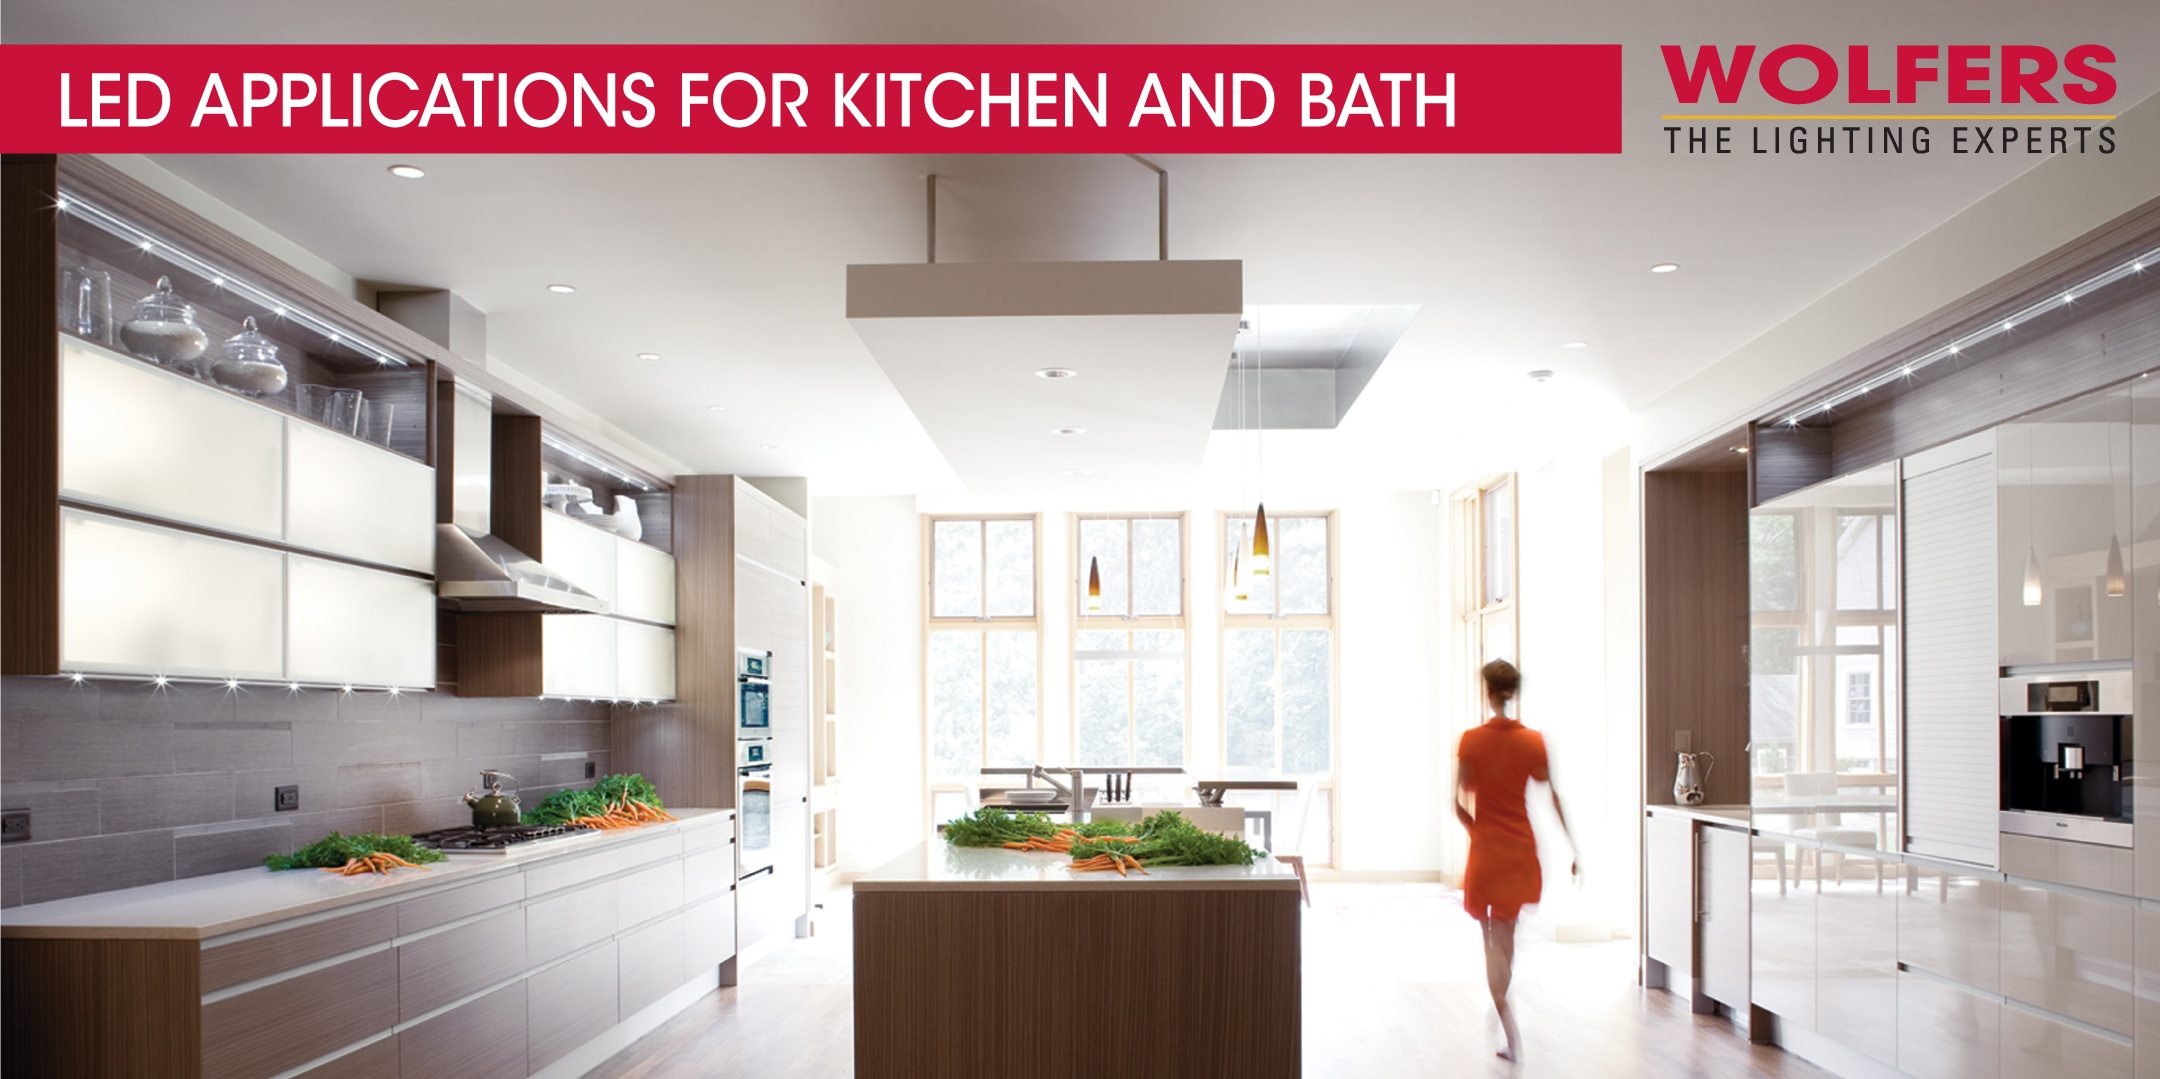 Join us for our Seminars on LED Kitchen and Bath Lighting